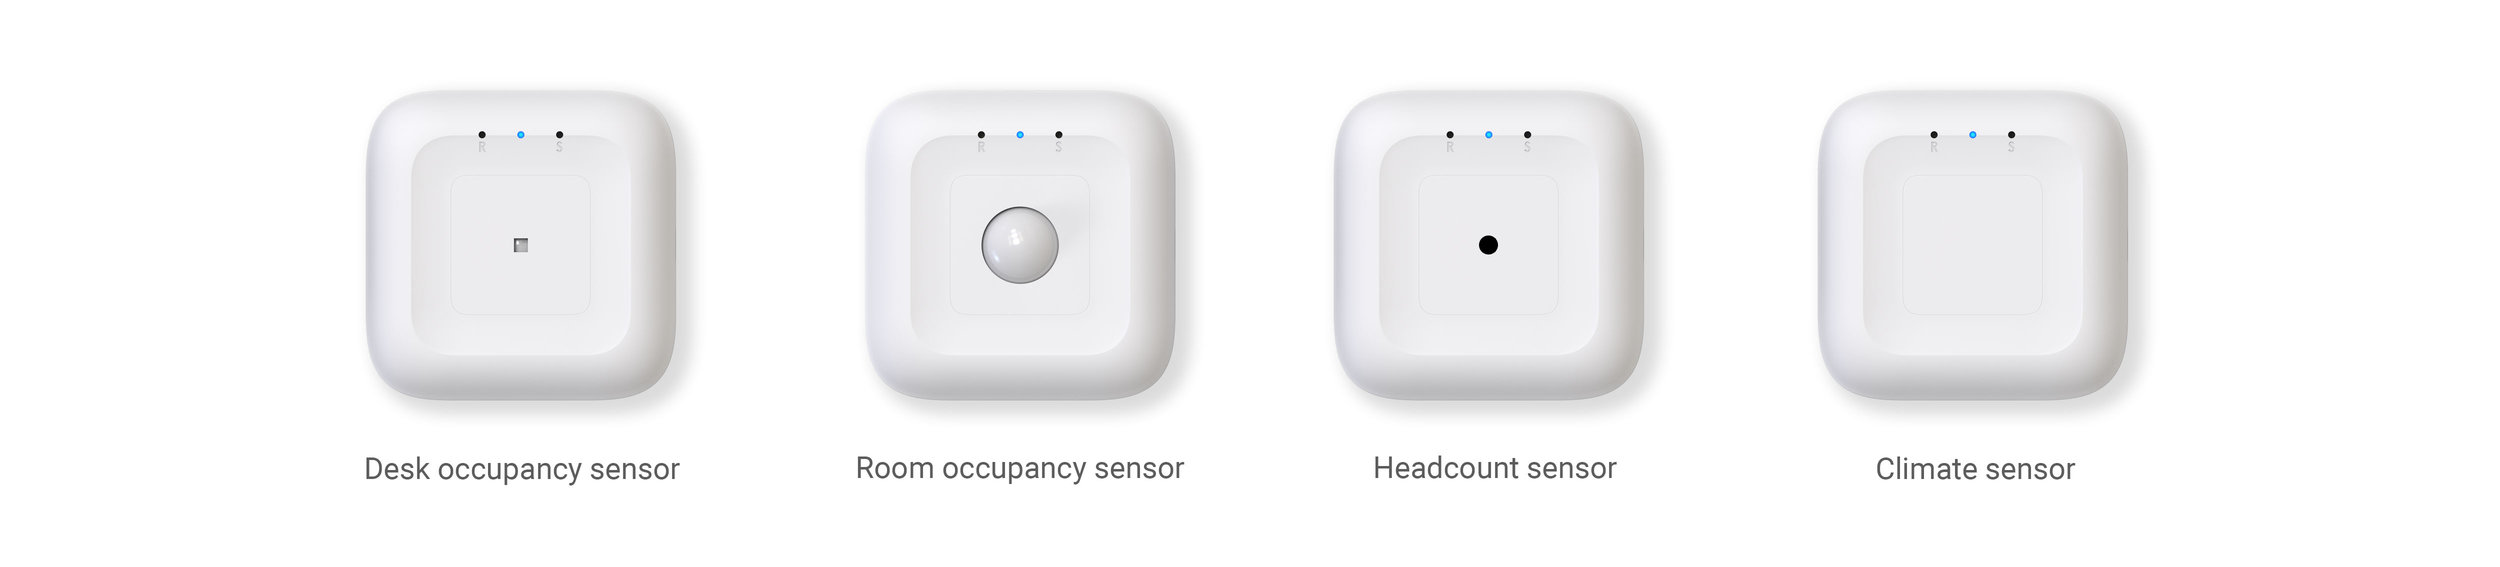 iotspot 4 sensors in a row v5 2019.jpg